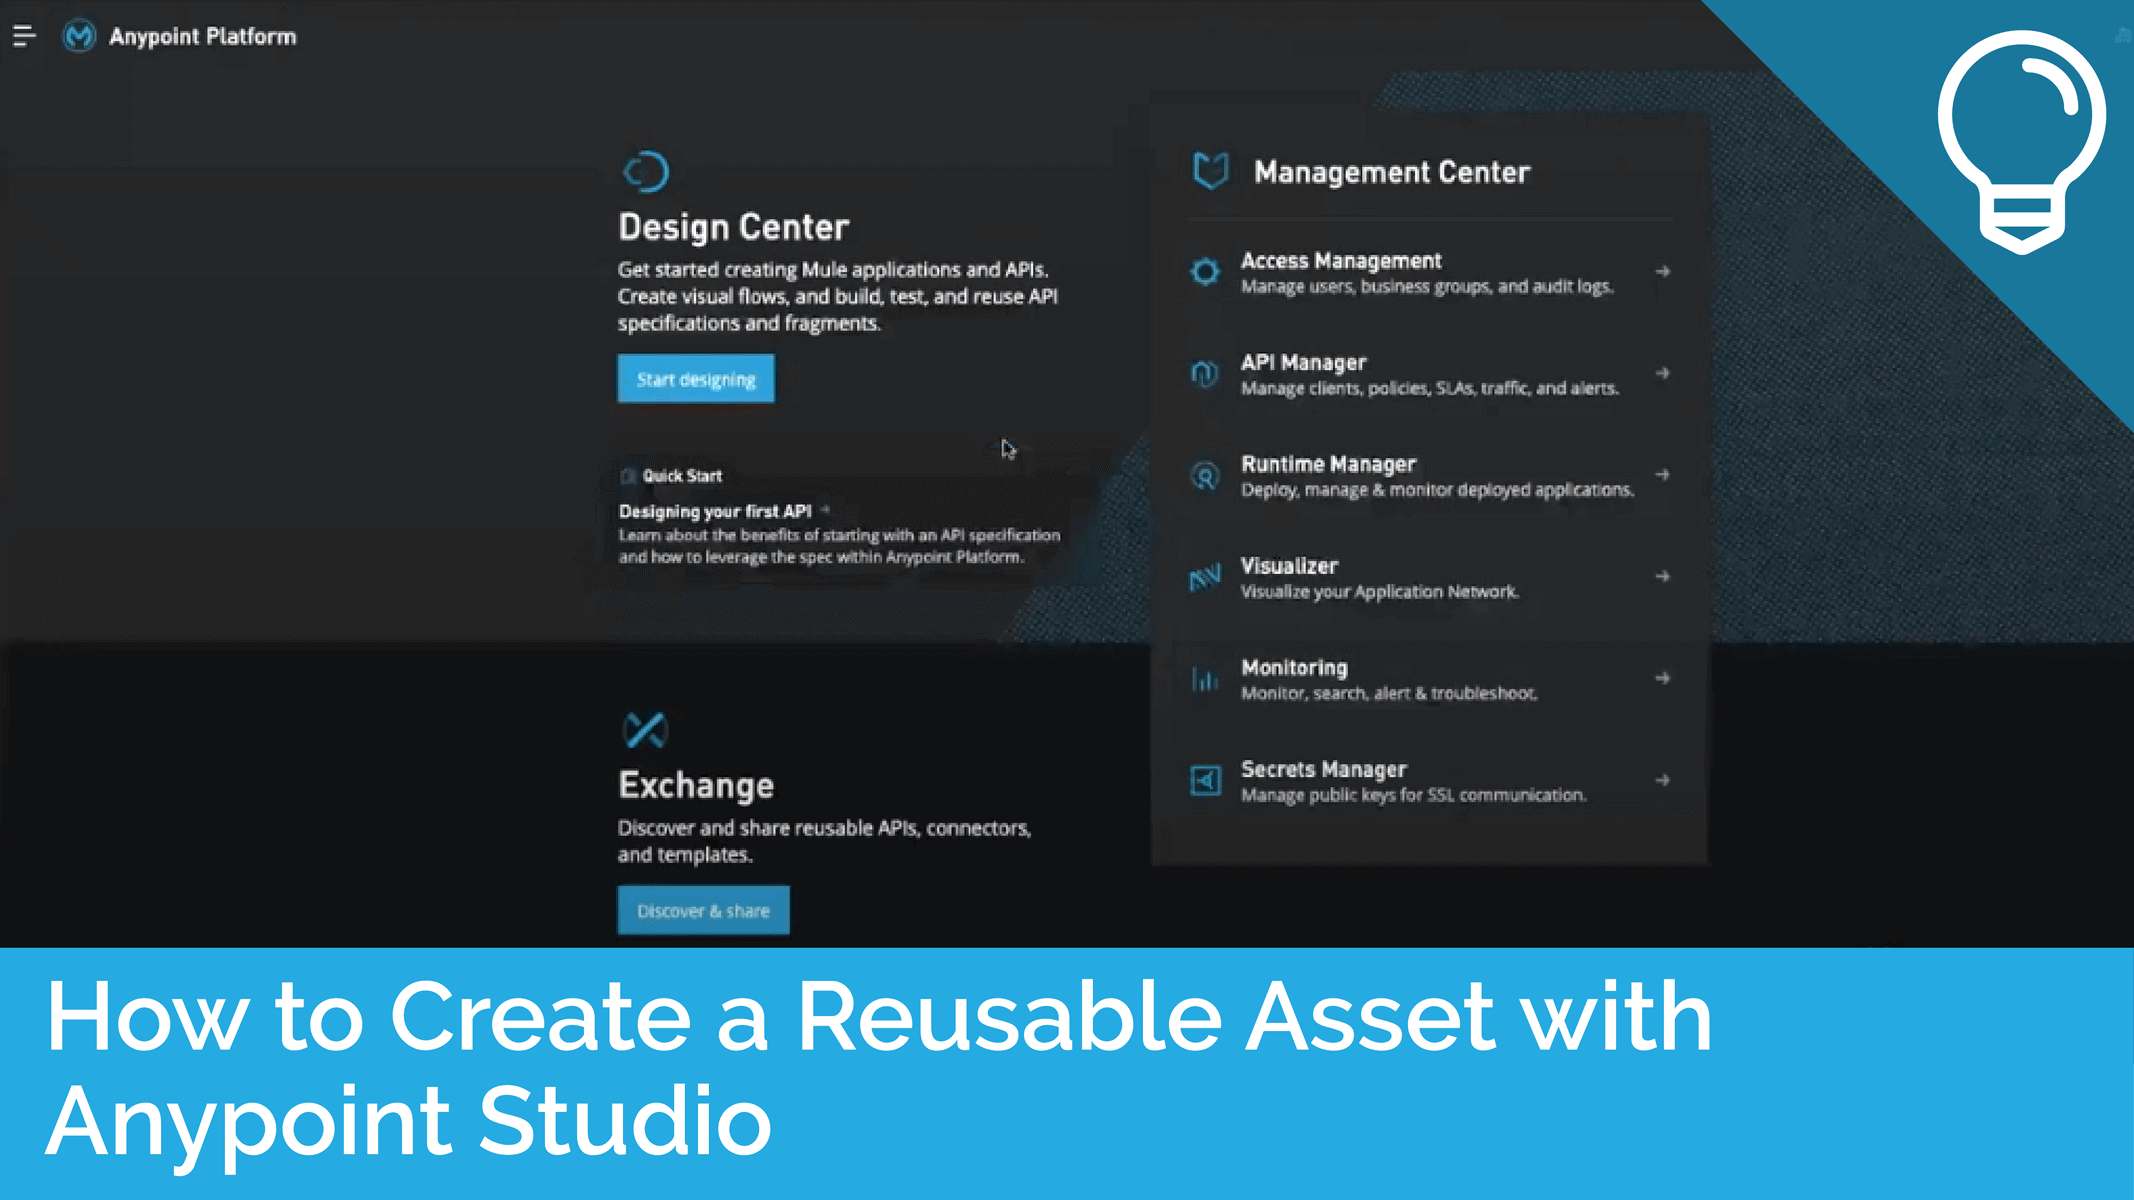 How to Create a Reusable Asset with Anypoint Studio